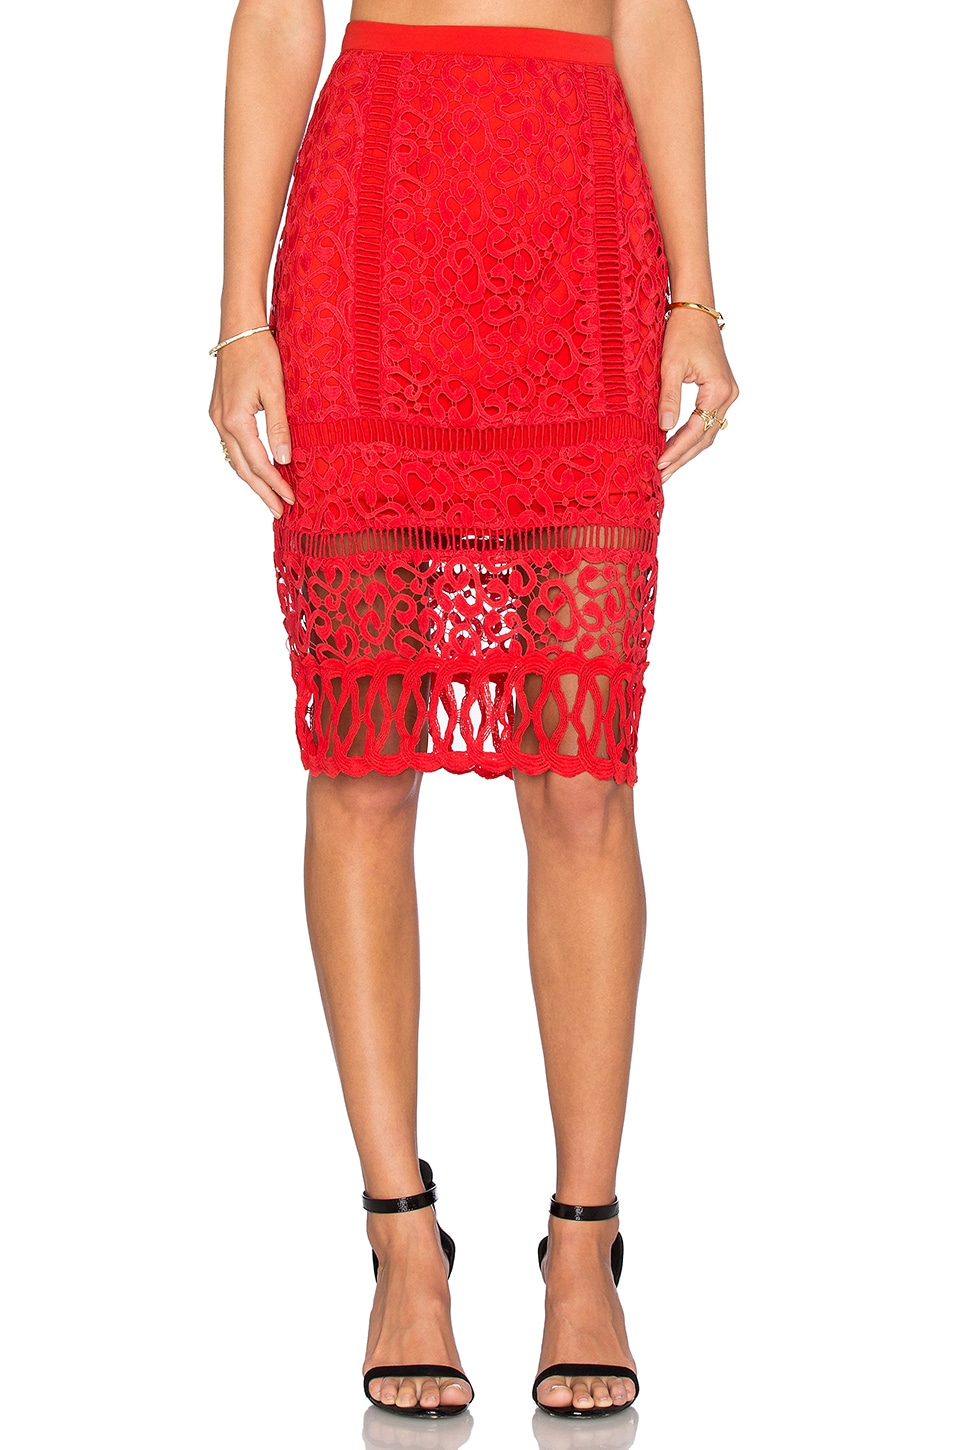 Melrose Lace Pencil Skirt